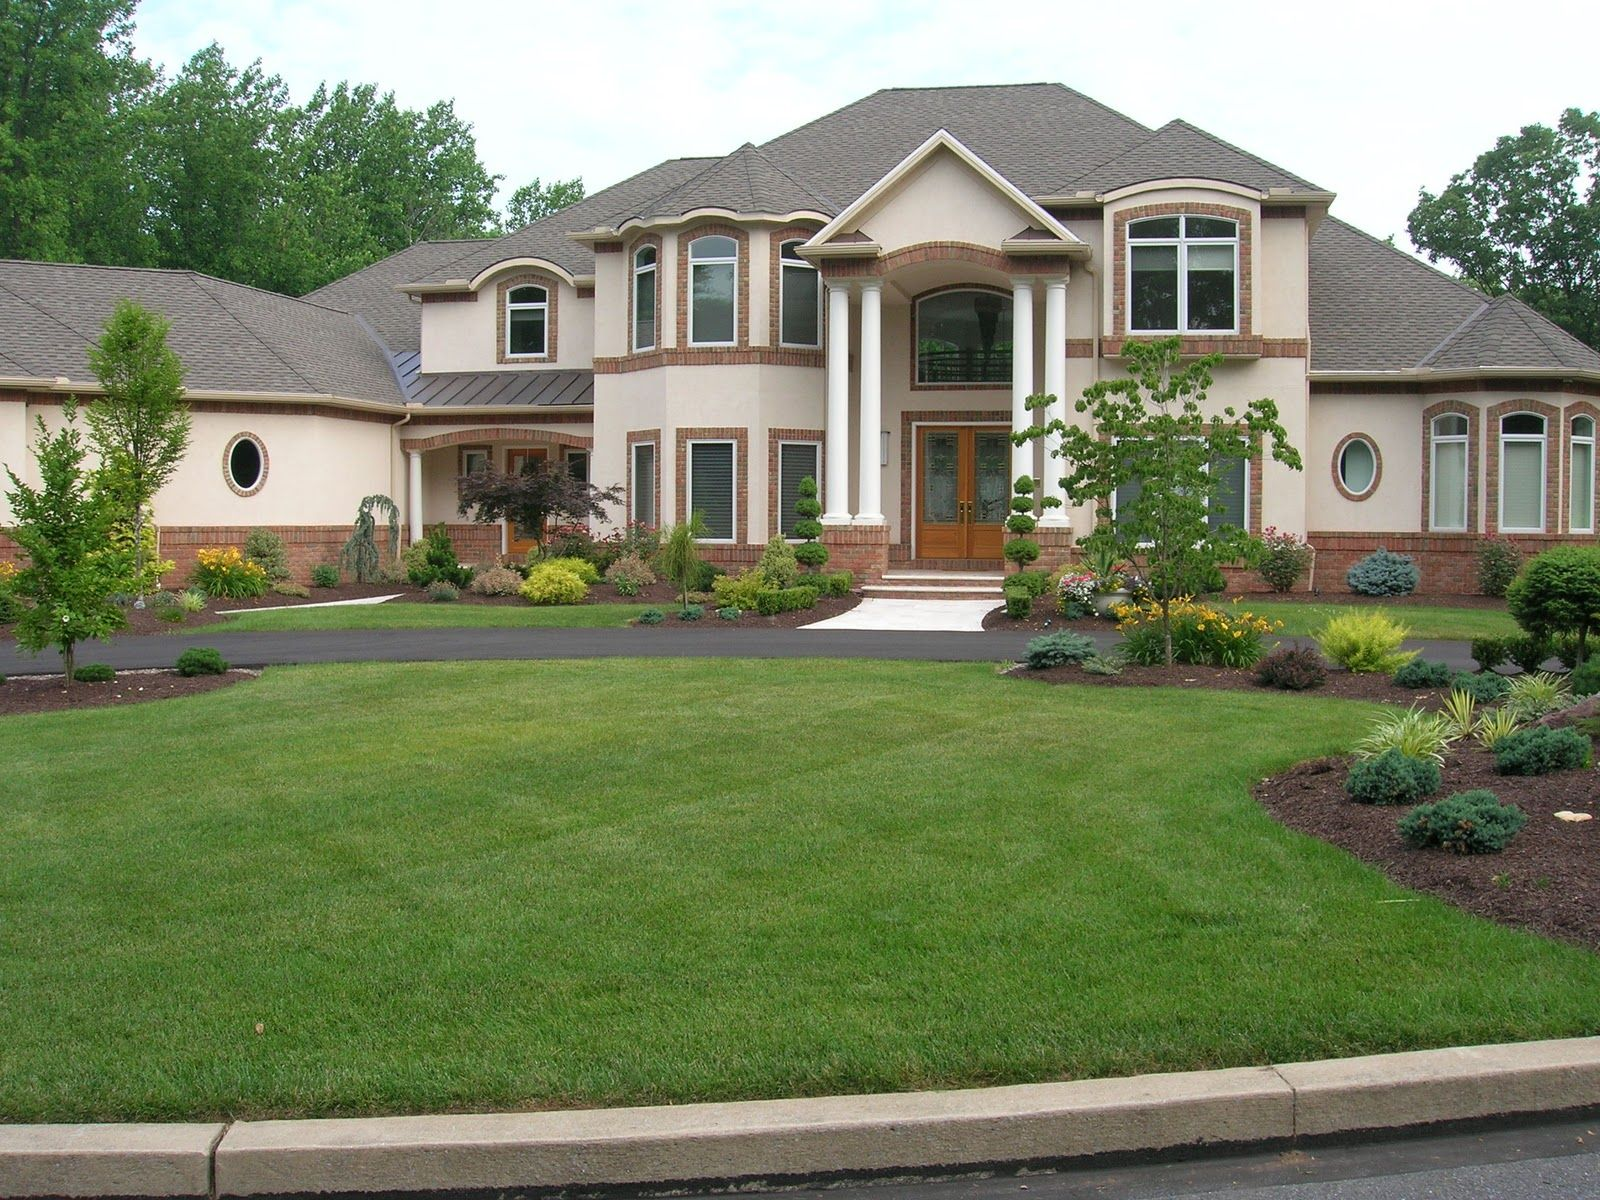 pictures of landscaping for a rambler house in mn importance of landscape ideas - Home Landscape Design Ideas